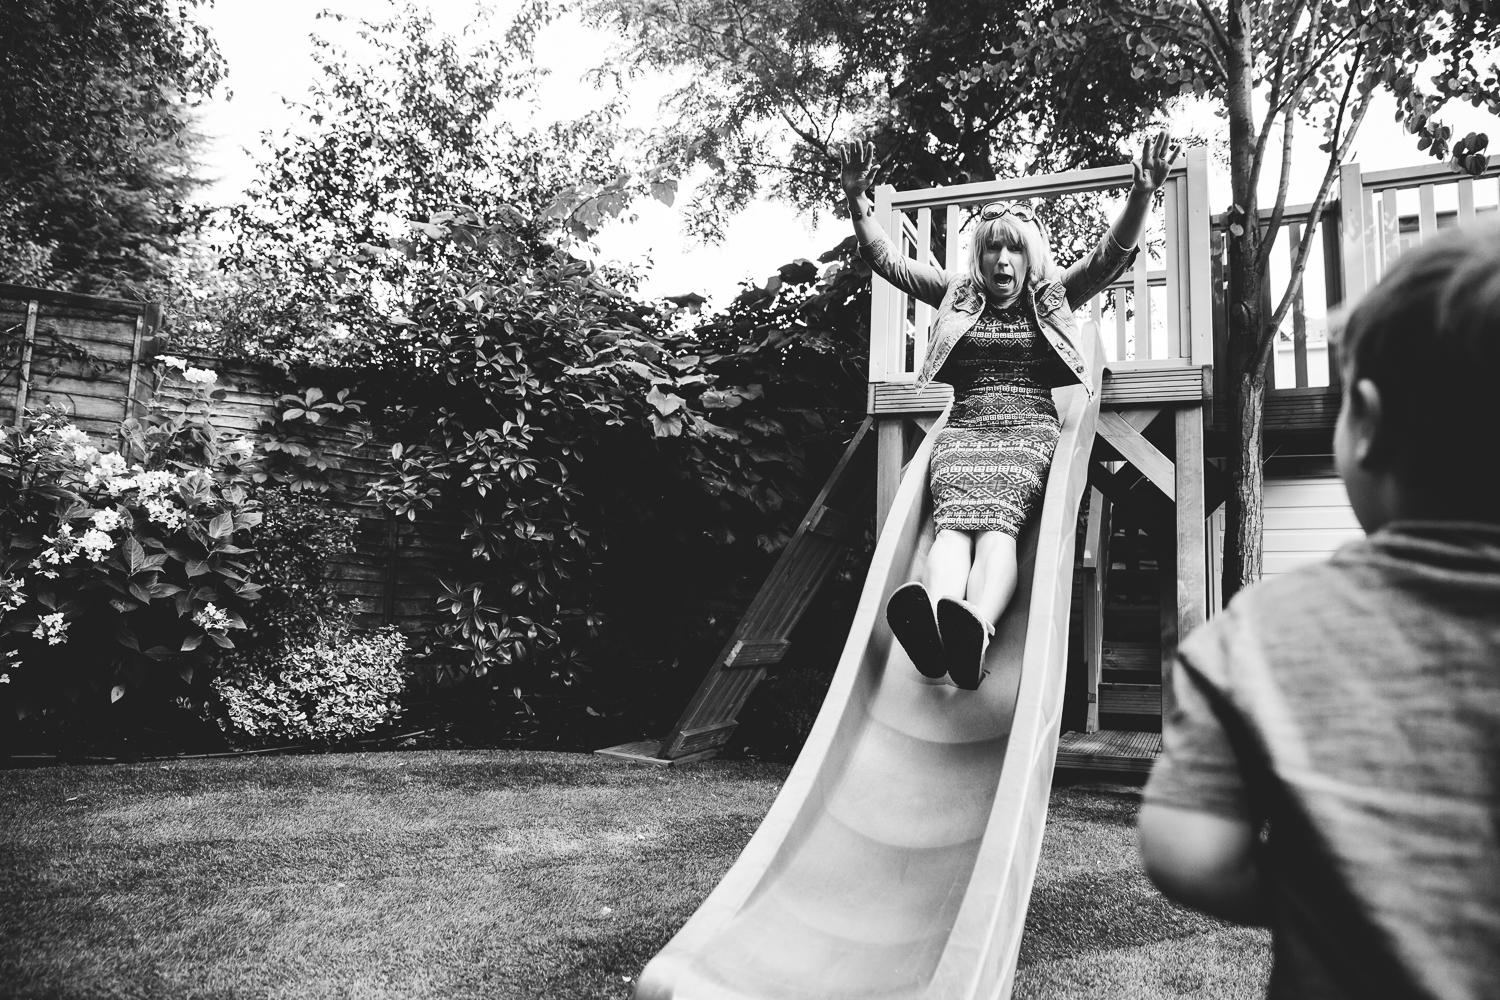 lady on slide garden birthday party photography london